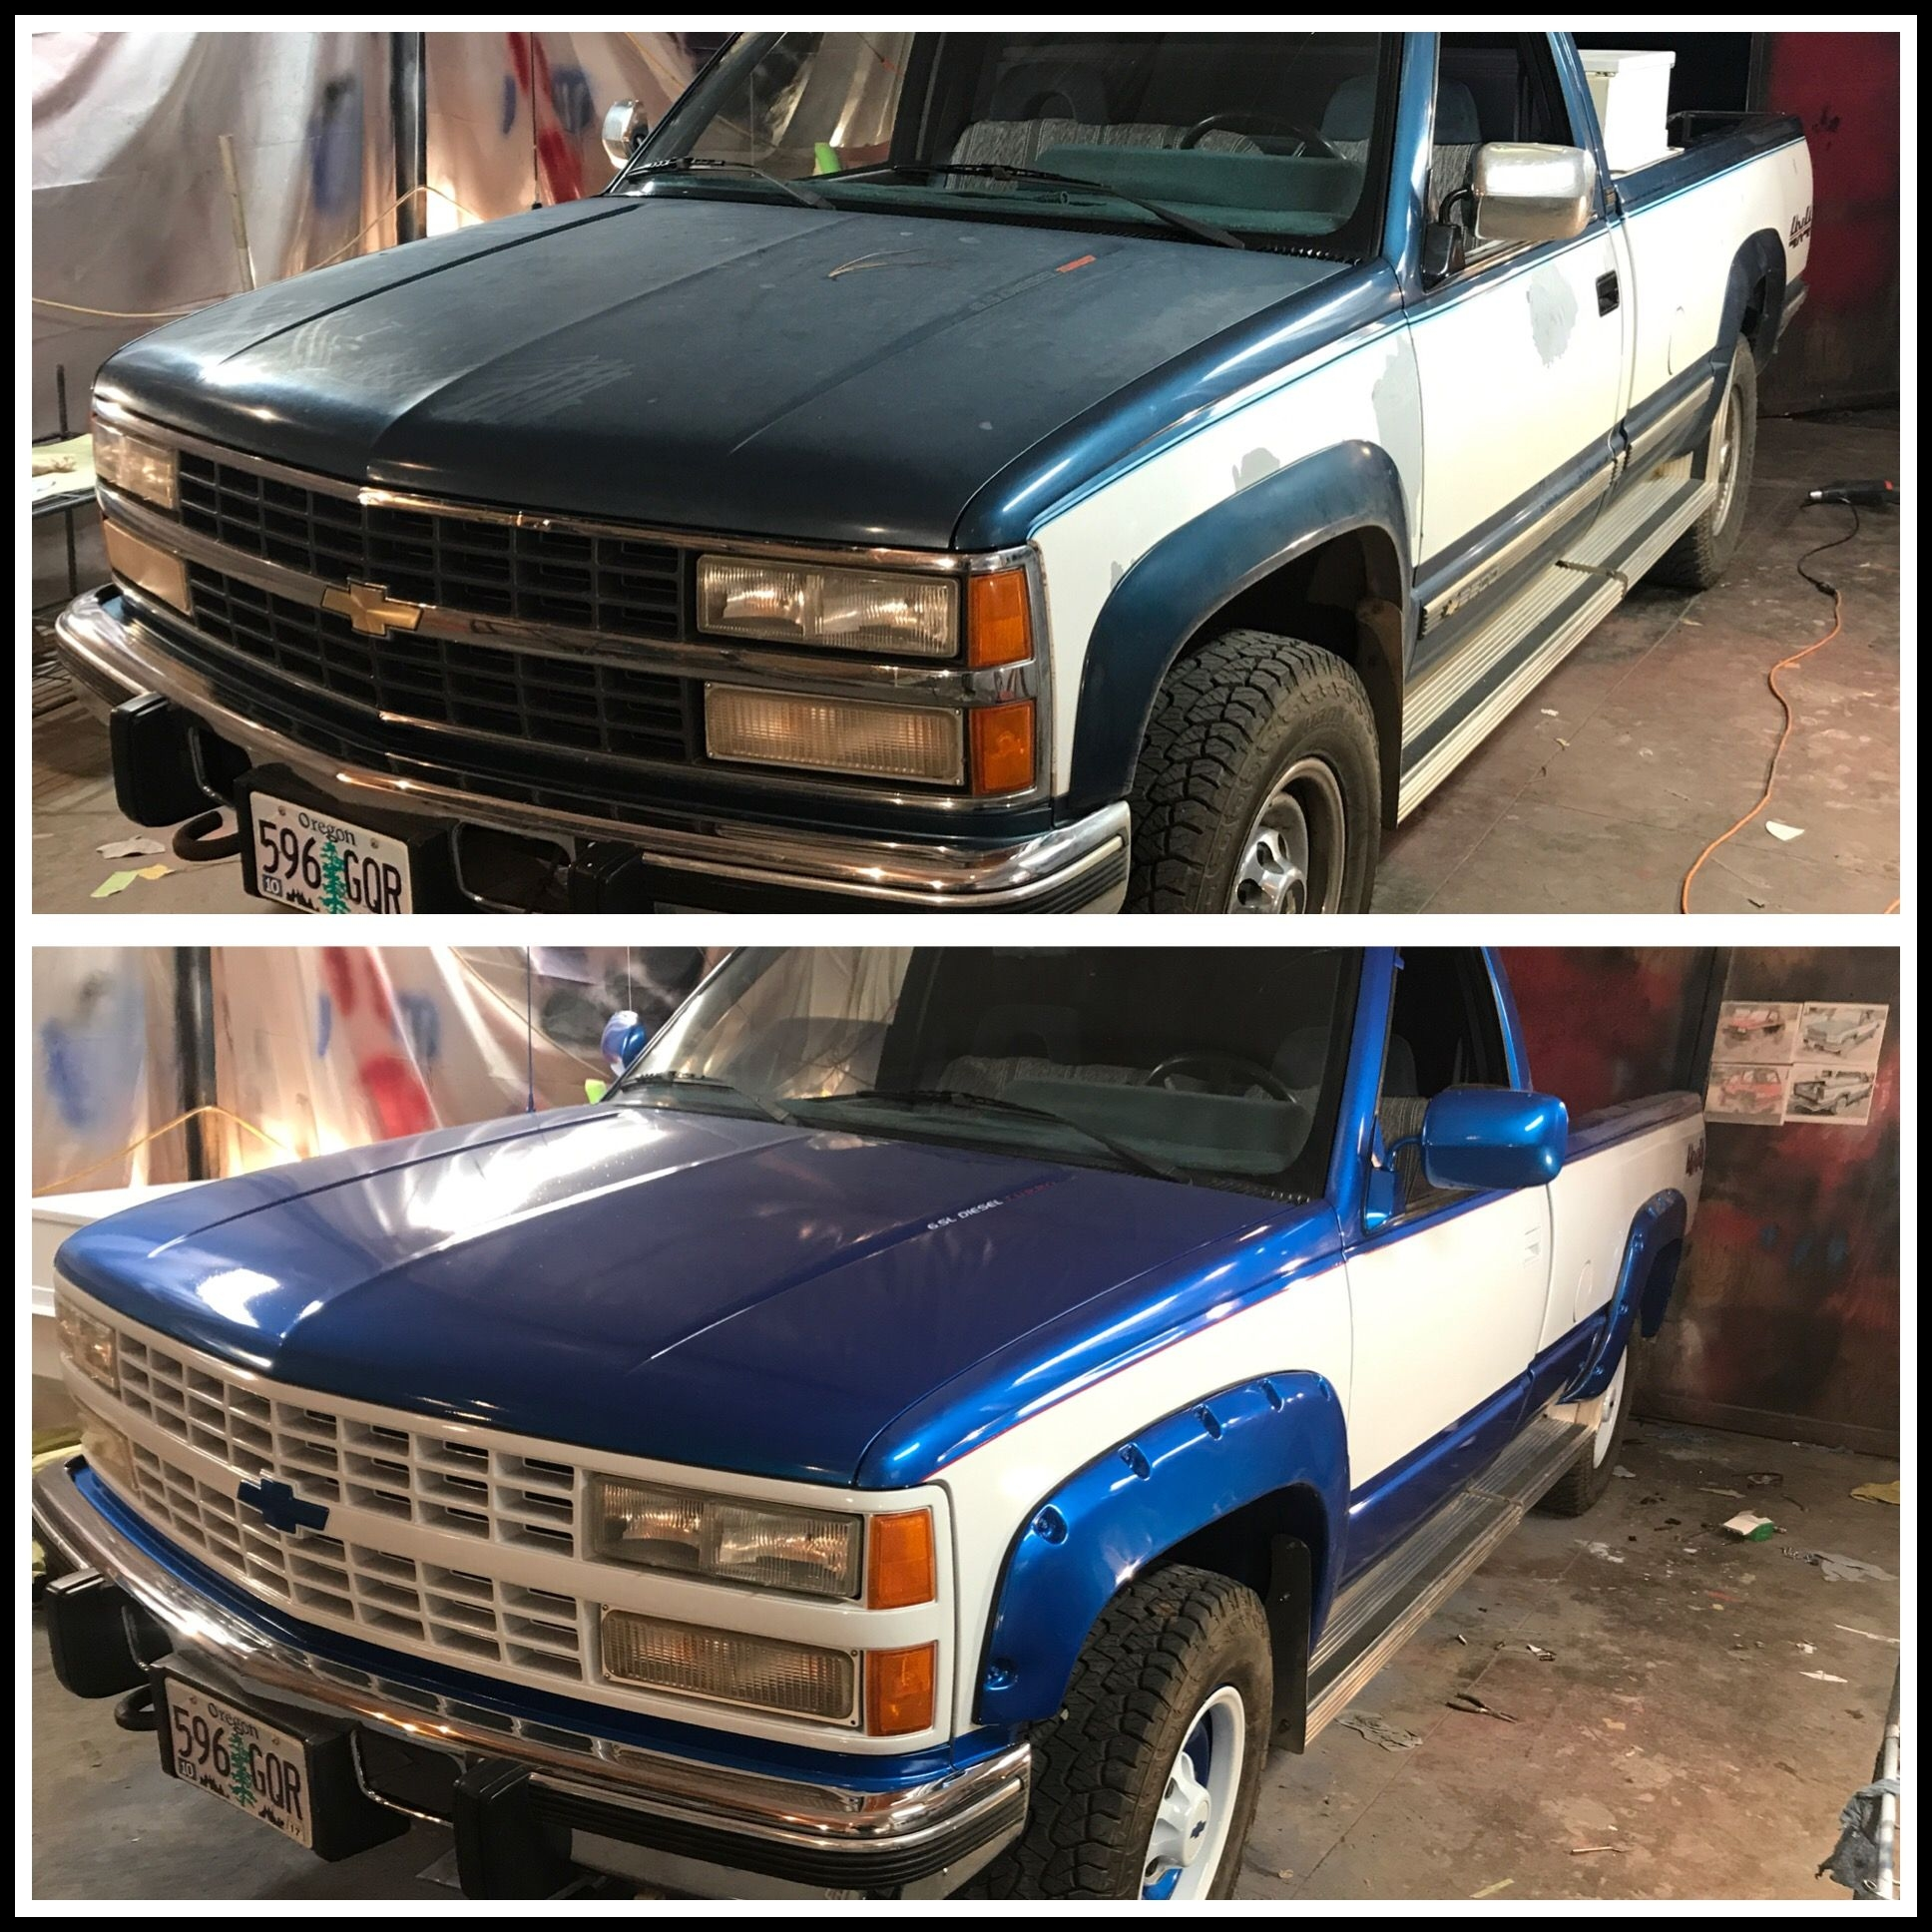 Custom paint job chevy silverado Has red pinstripe and all inlaid graphics By Jason Perry intense metallic blue with winter white